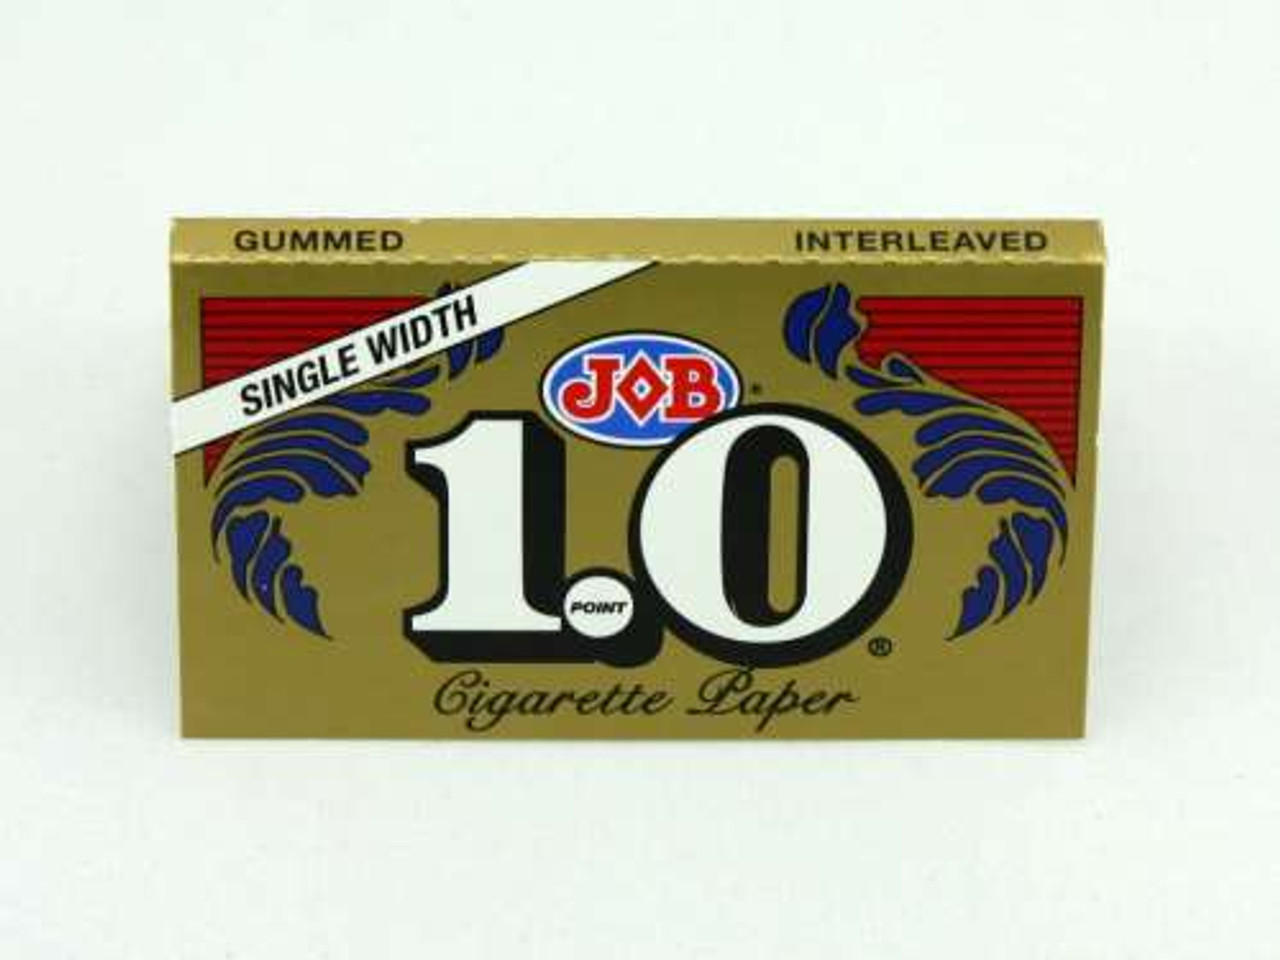 JOB Single Wide Gold Rolling Papers